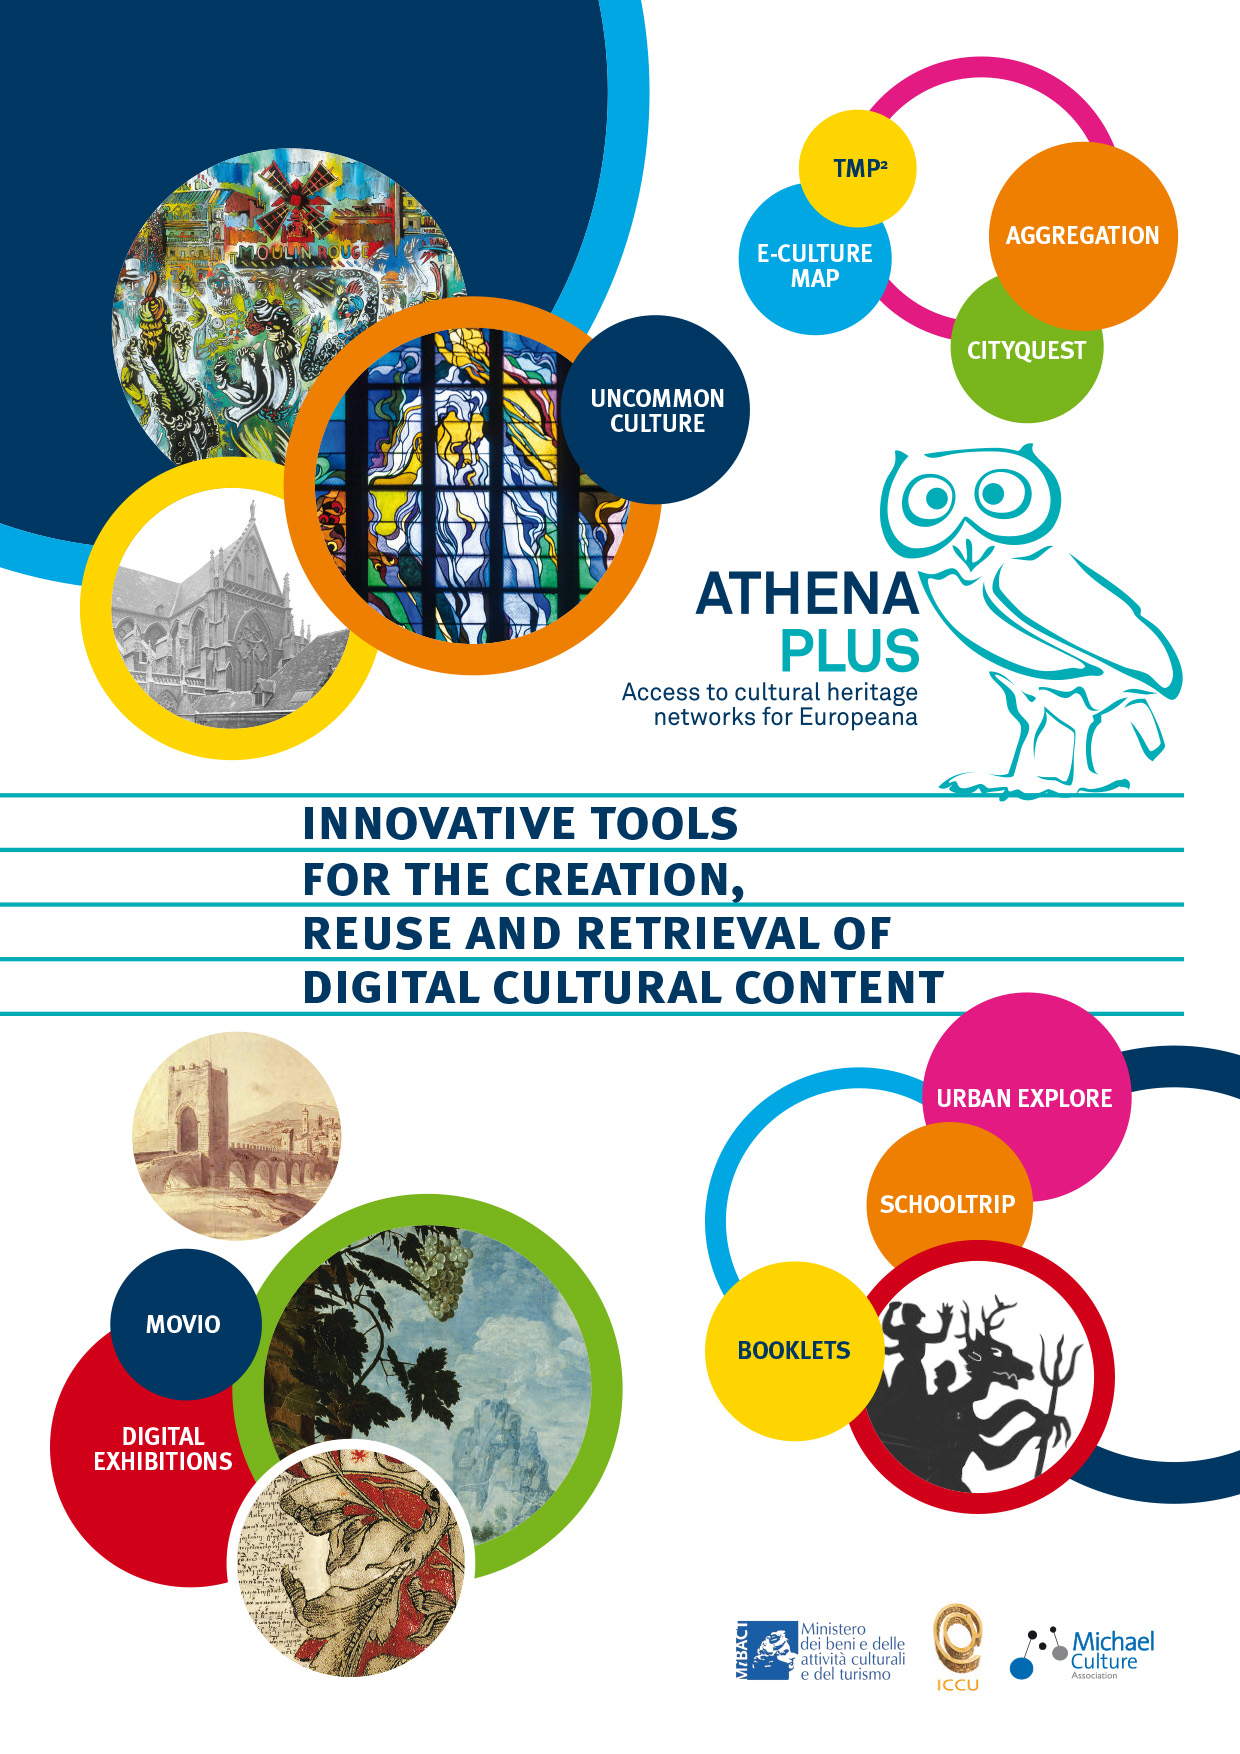 AthenaPlus Brochure (October 2015): cover